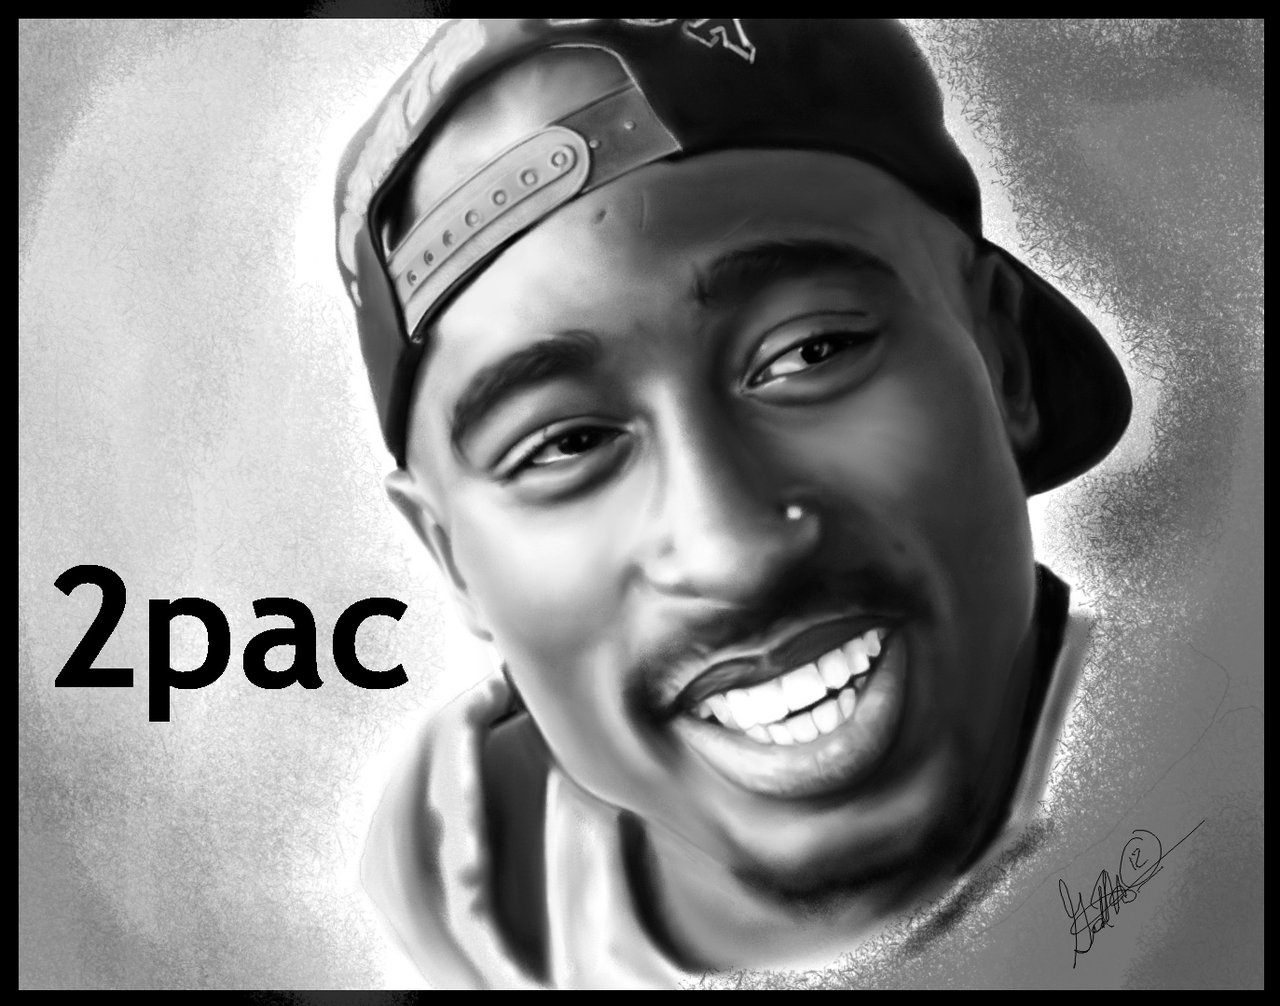 2pac download